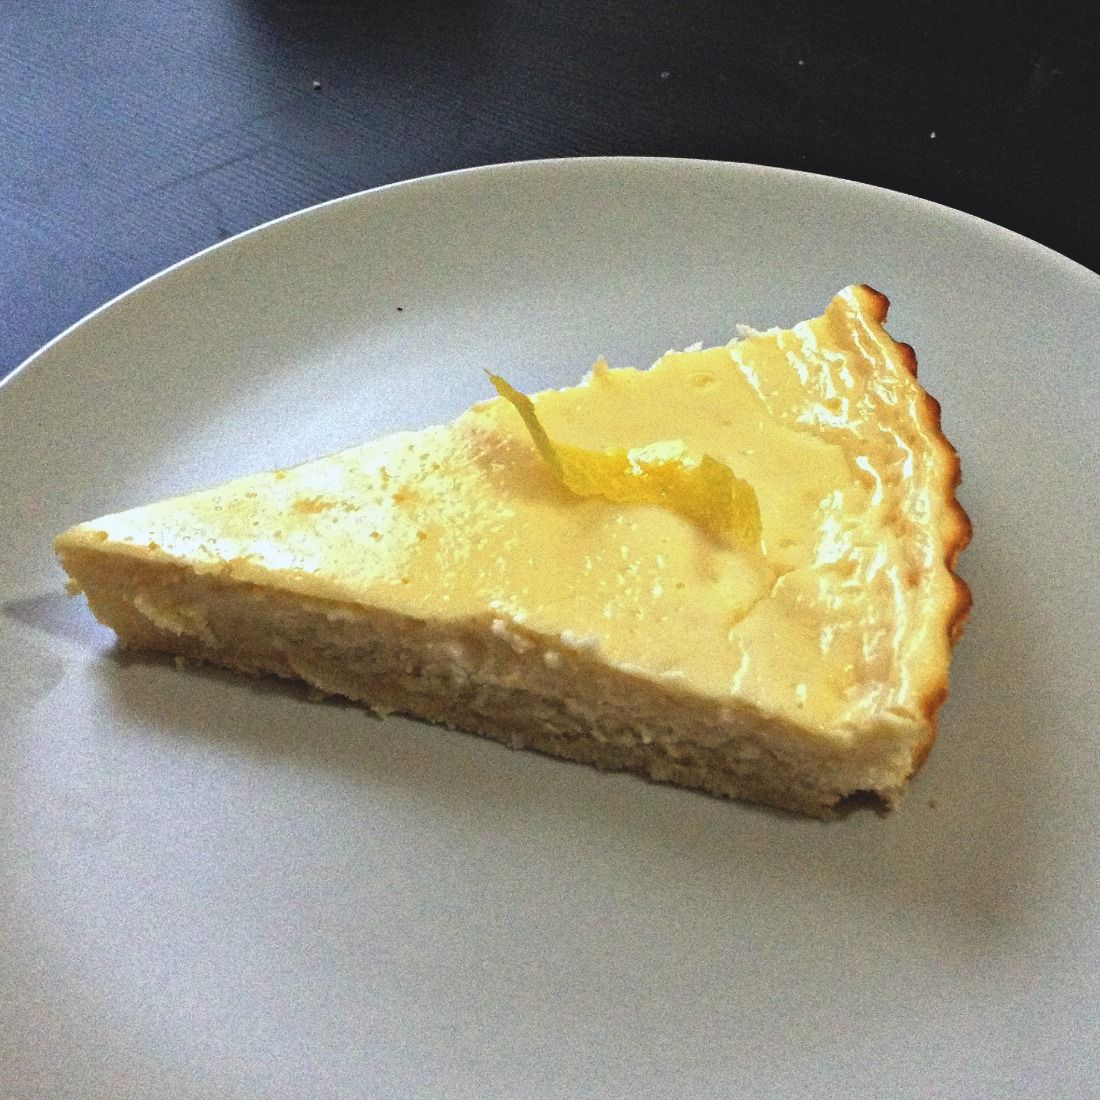 Brooke's Kitchen of Culinary Dreams: Low Carb Lemon Cheesecake Tart